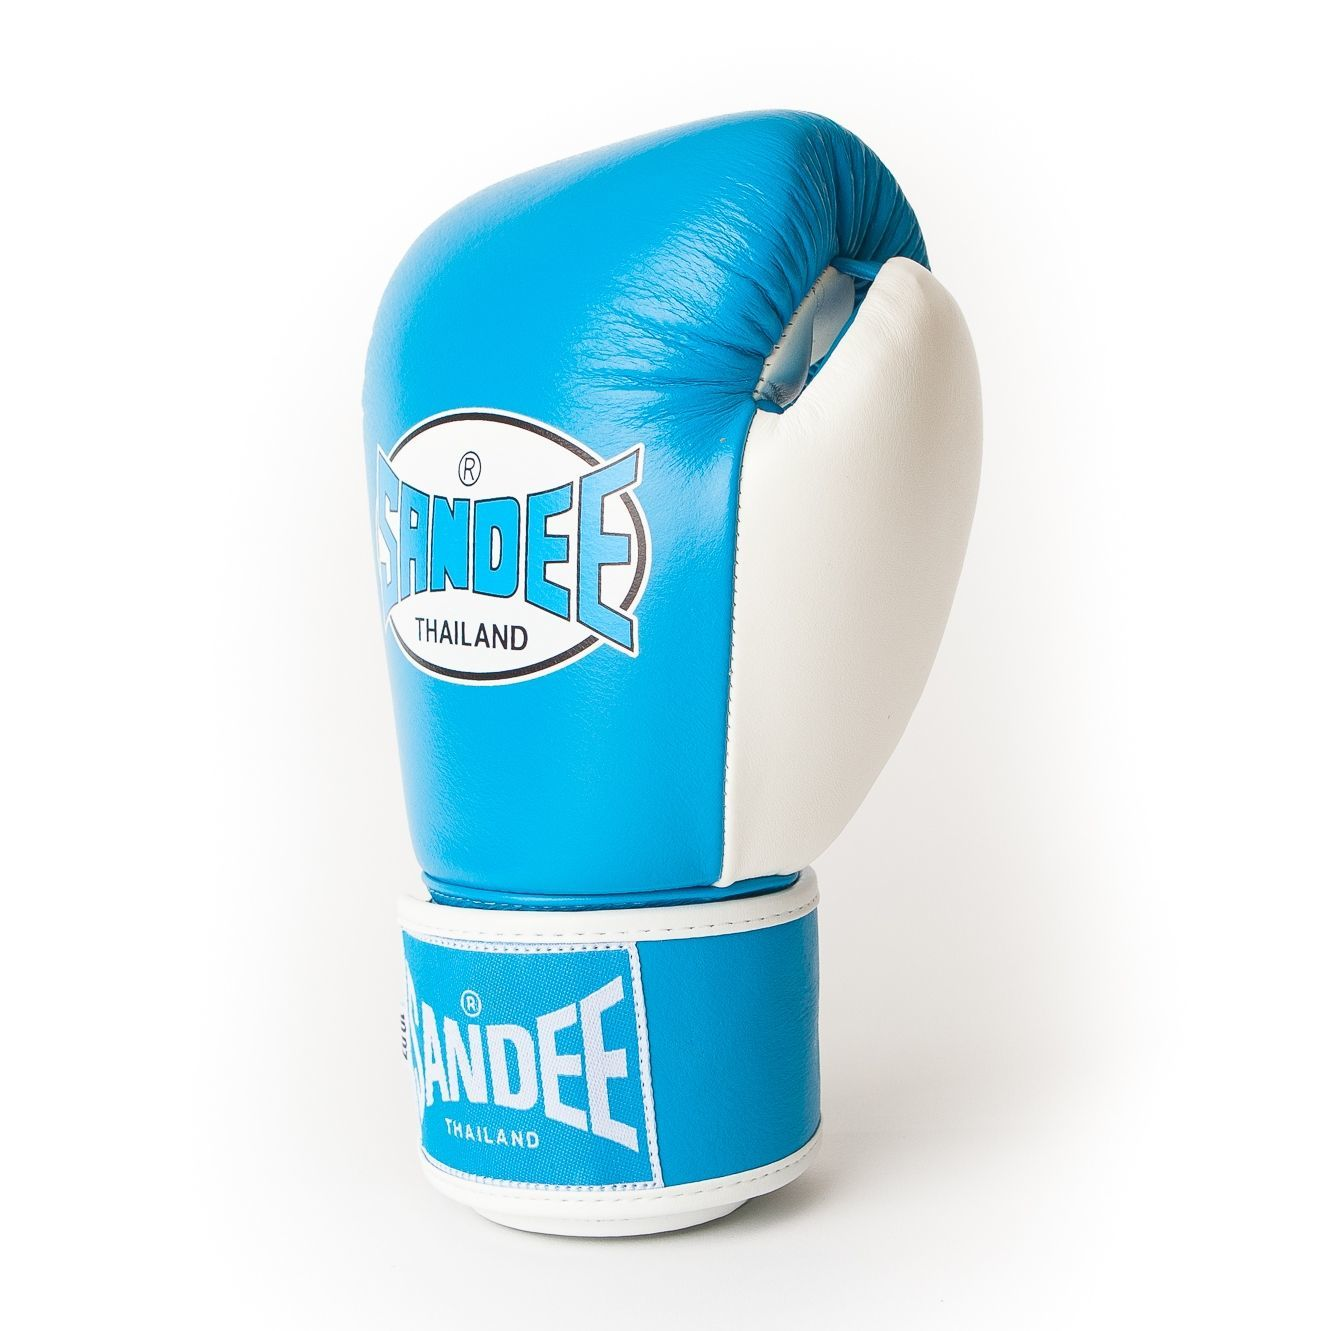 SANDEE_Fluro_blue-white_Boxing-Glove_SF.jpg